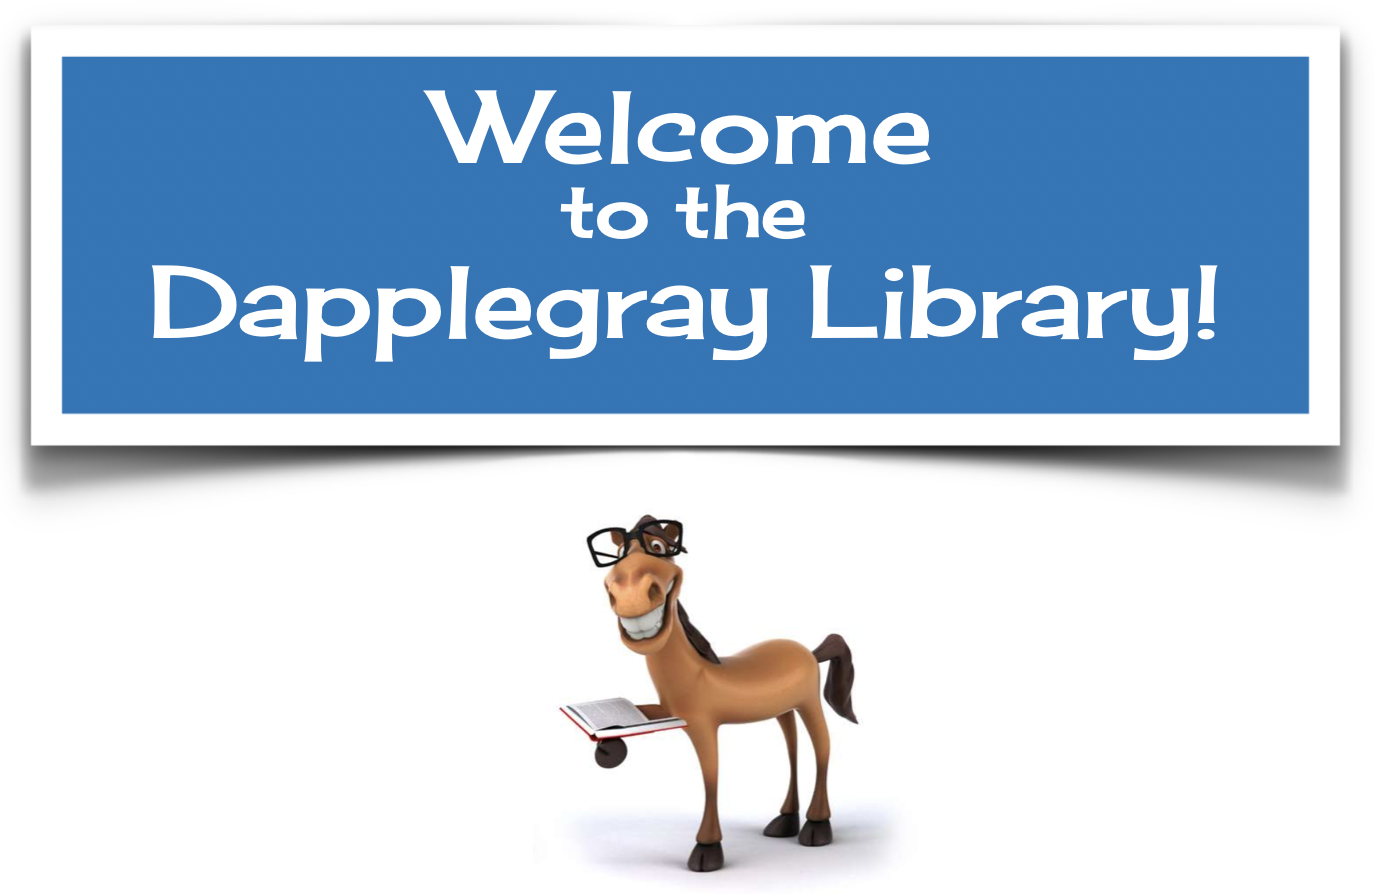 Welcome to the Dapplegray Library Banner with an image of a horse reading a book.